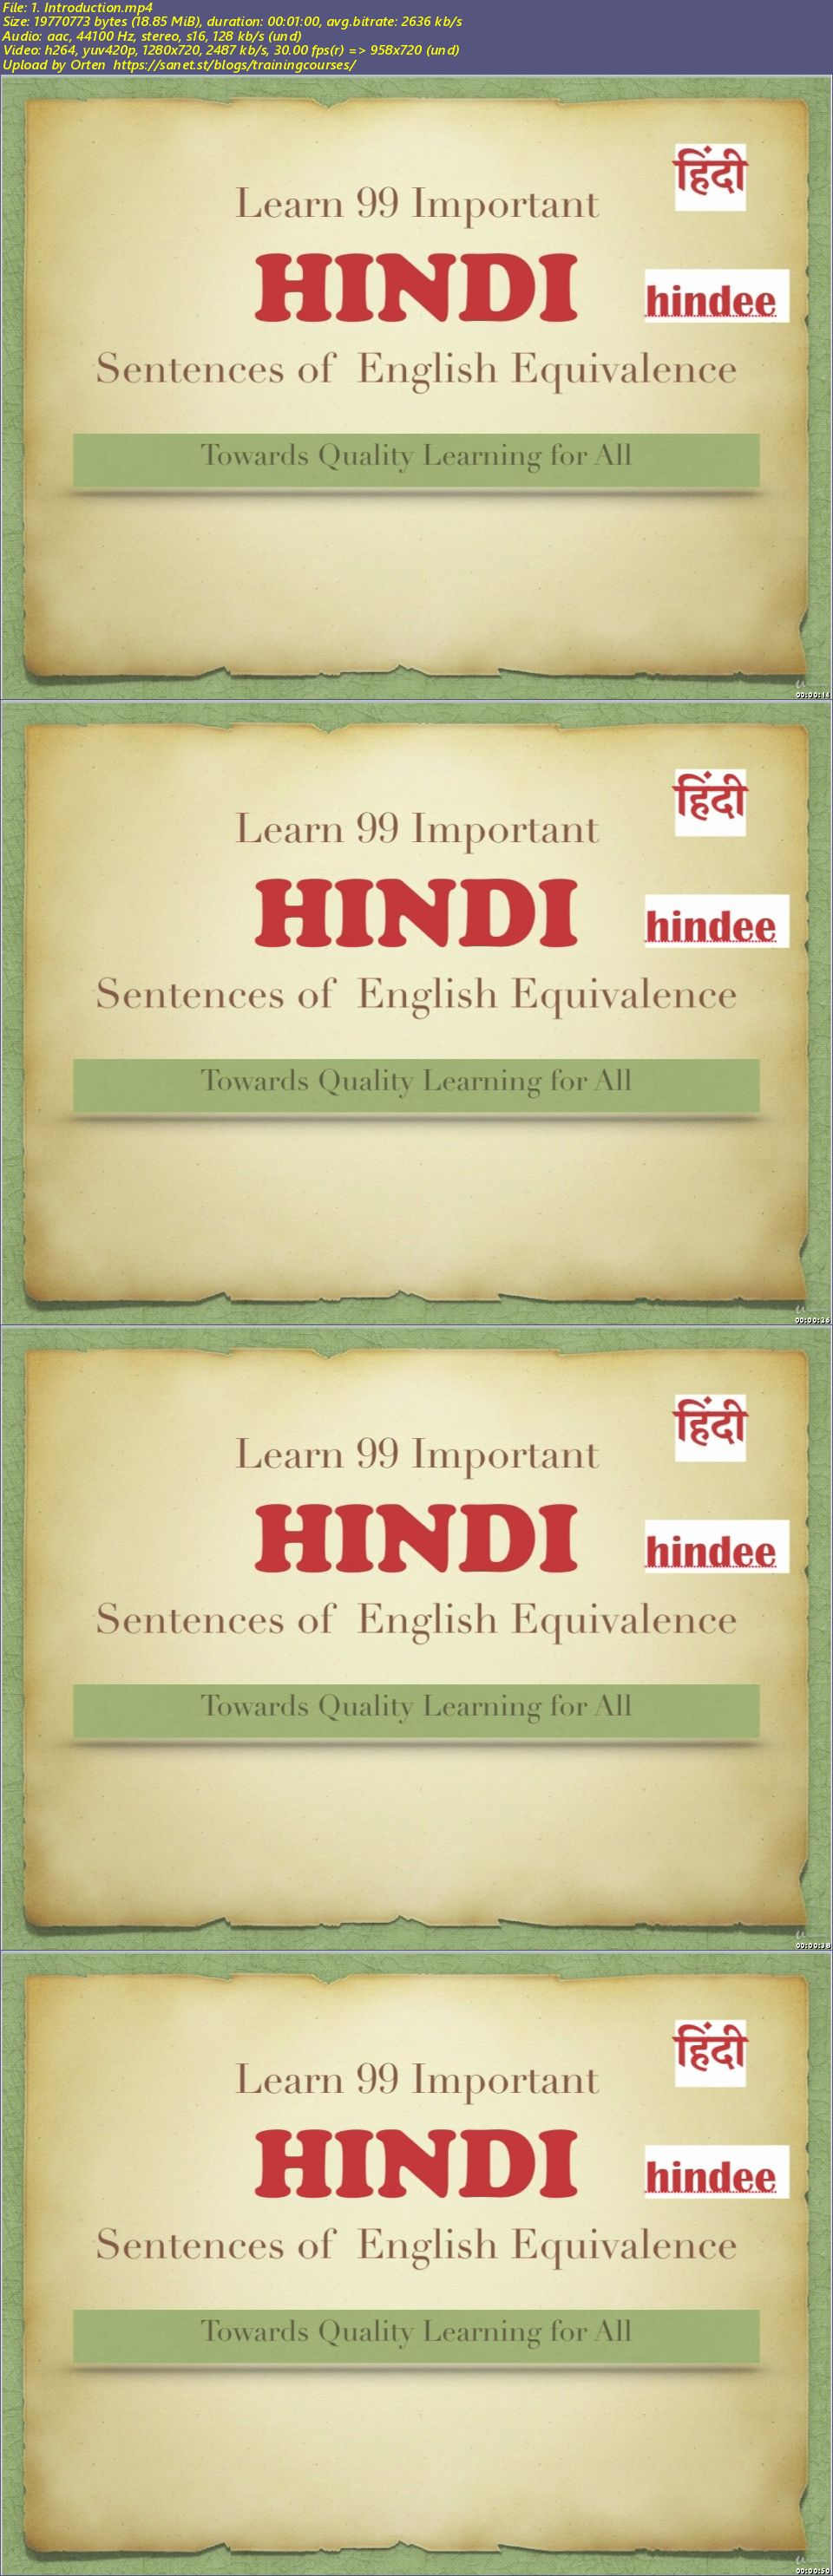 Download Learn 99 Important HINDI Sentences - SoftArchive